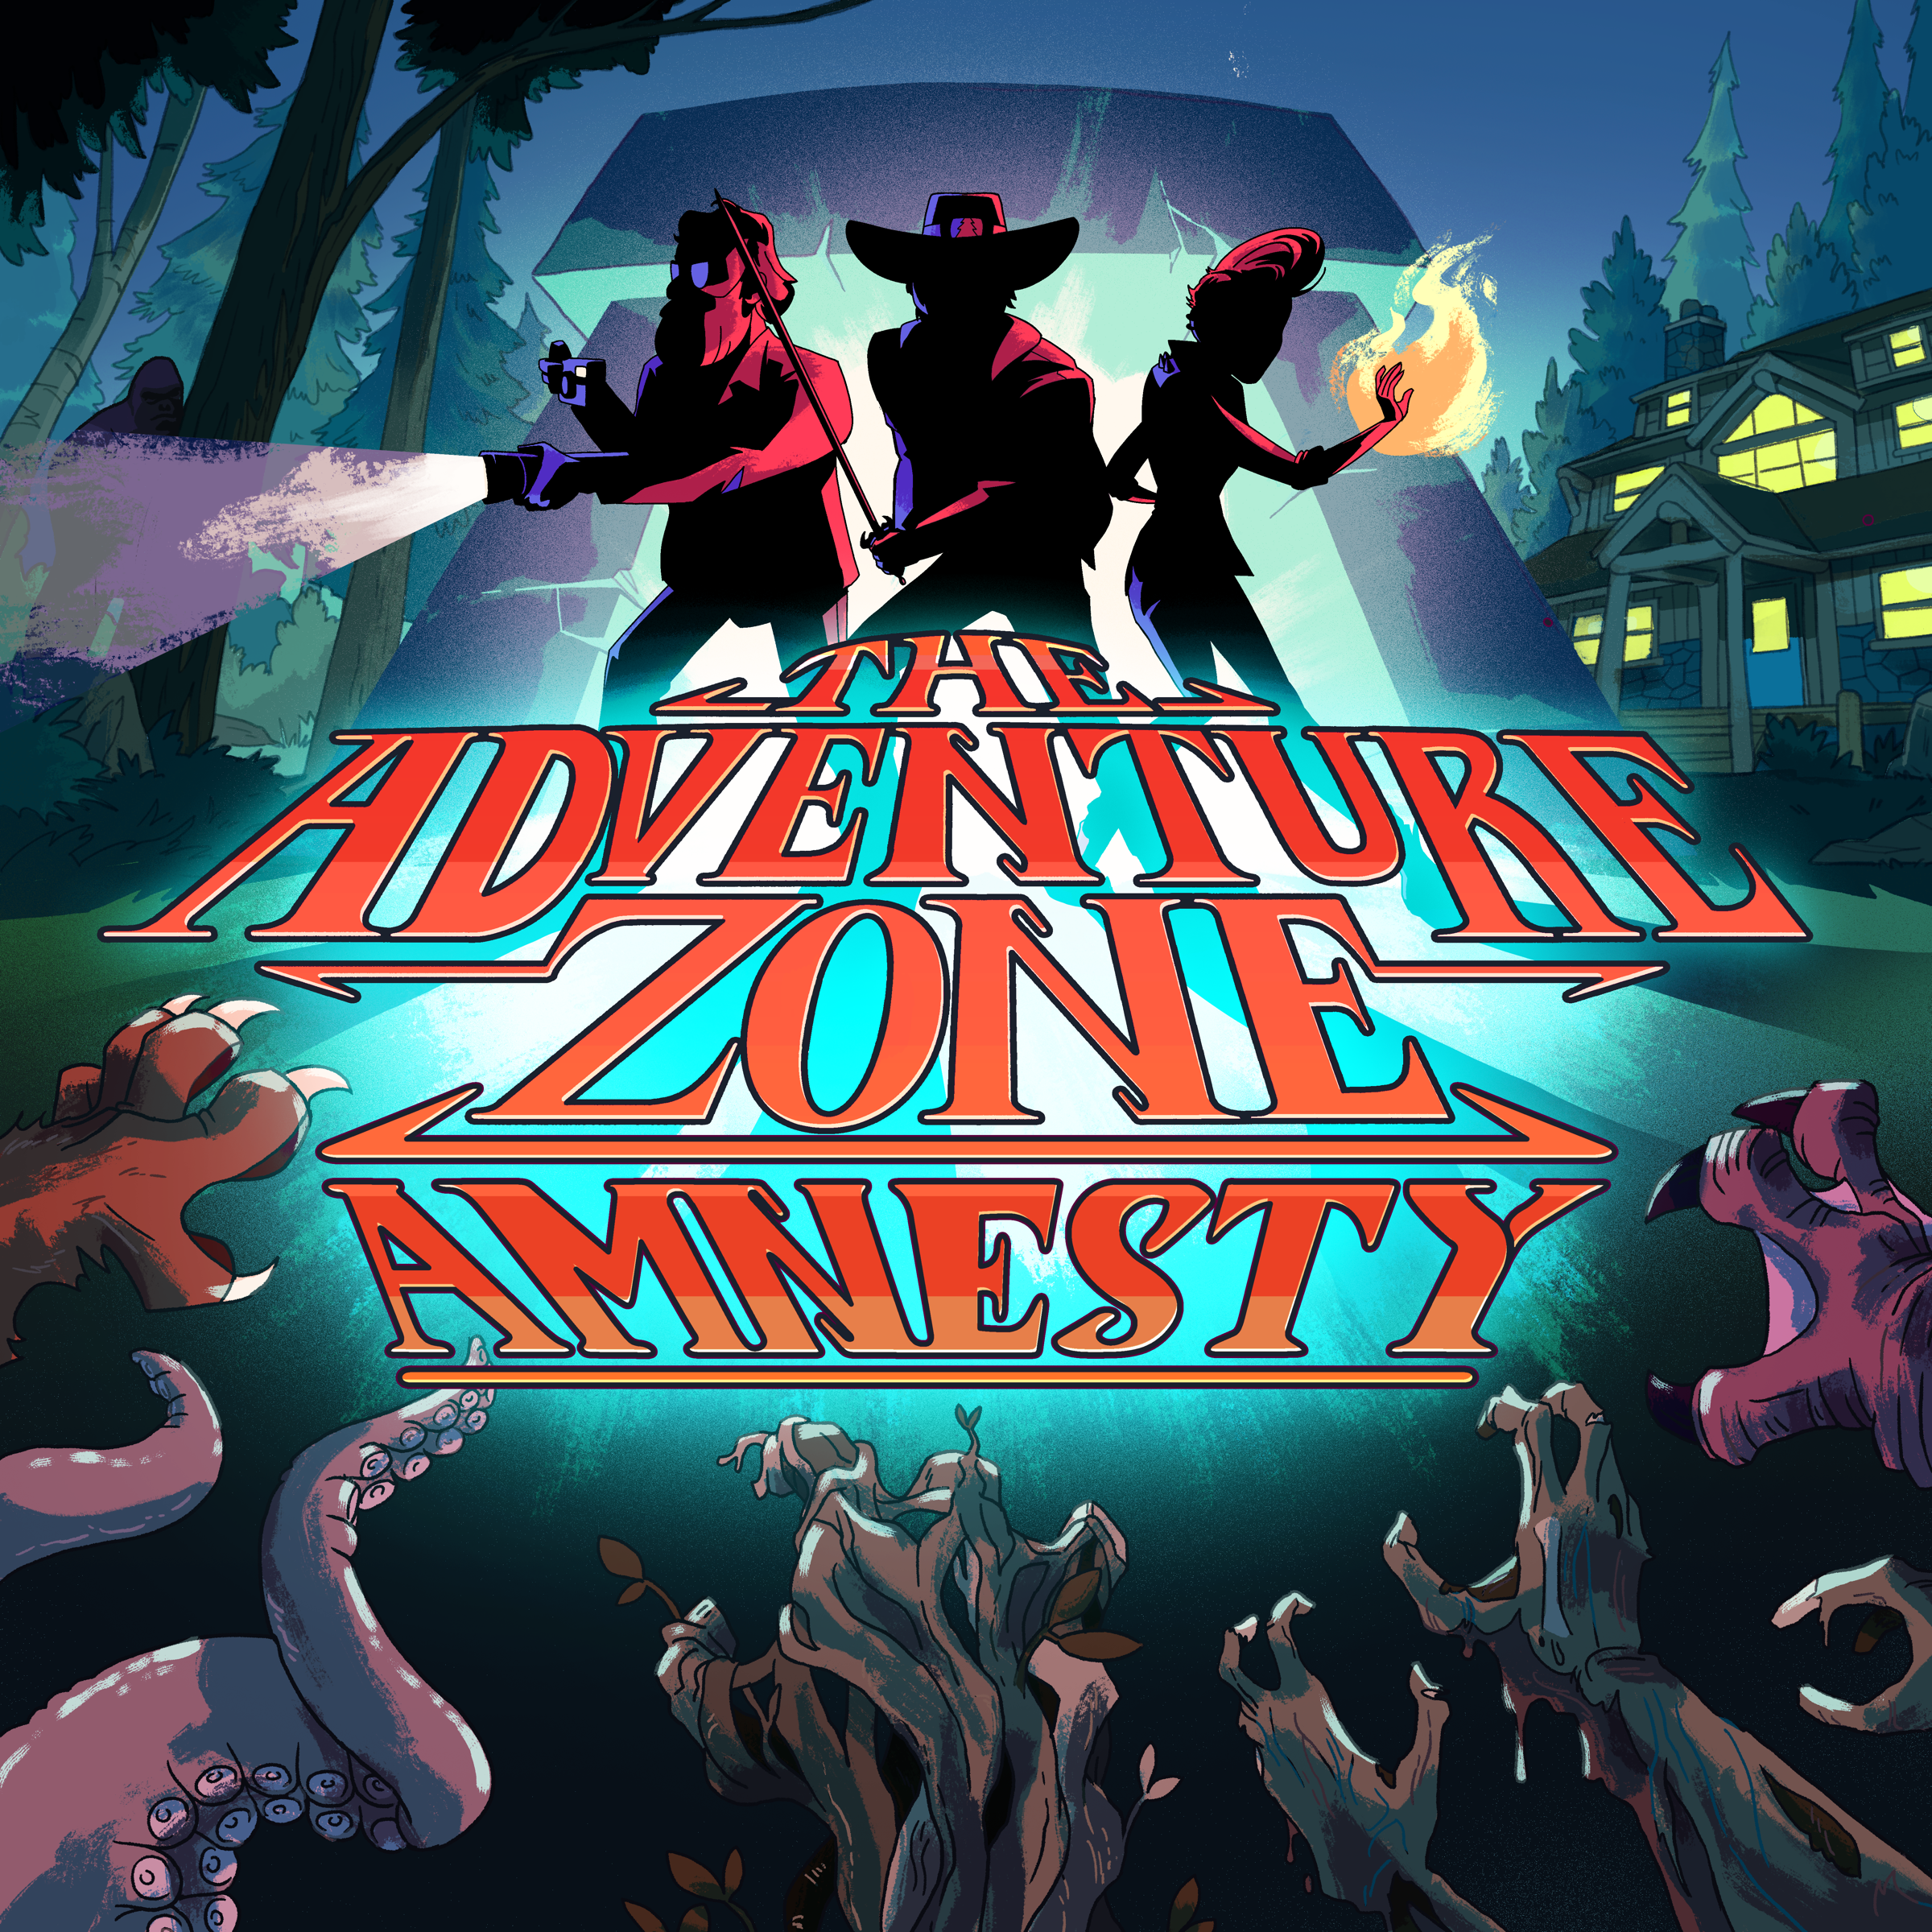 The The Adventure Zone Zone: Experiments Post-Mortem, More